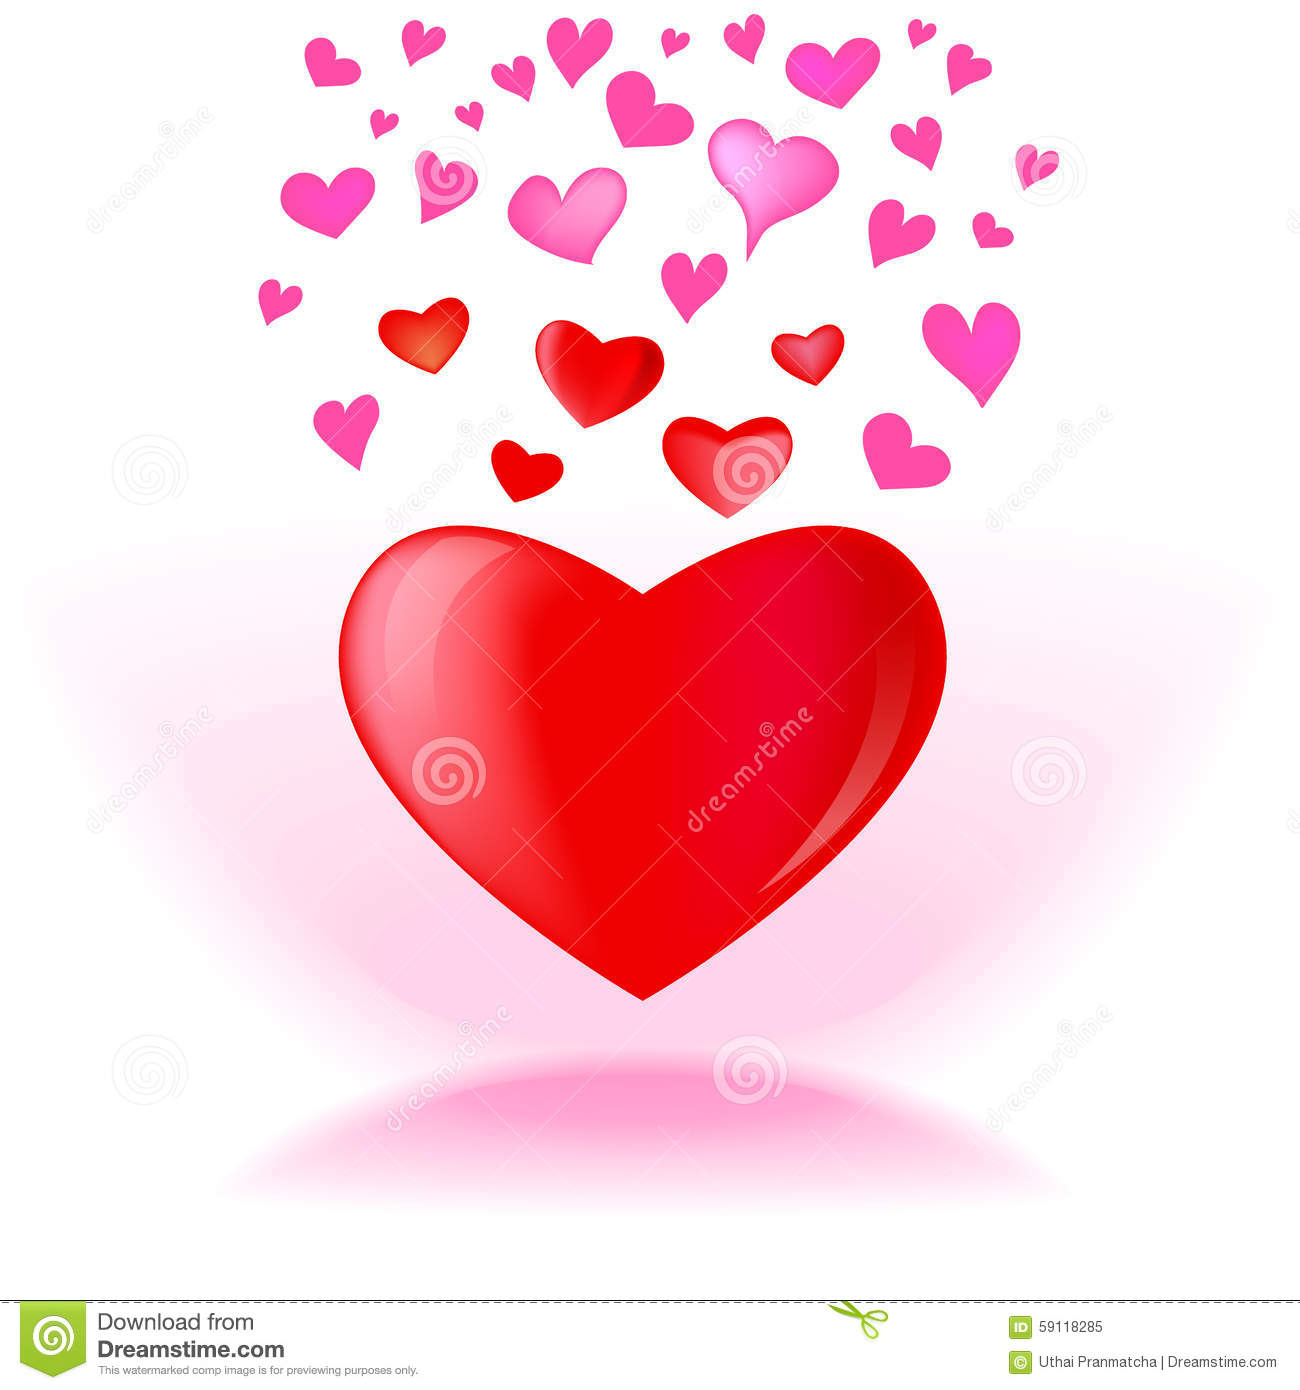 heart vector graphic design stock vector illustration of abstract